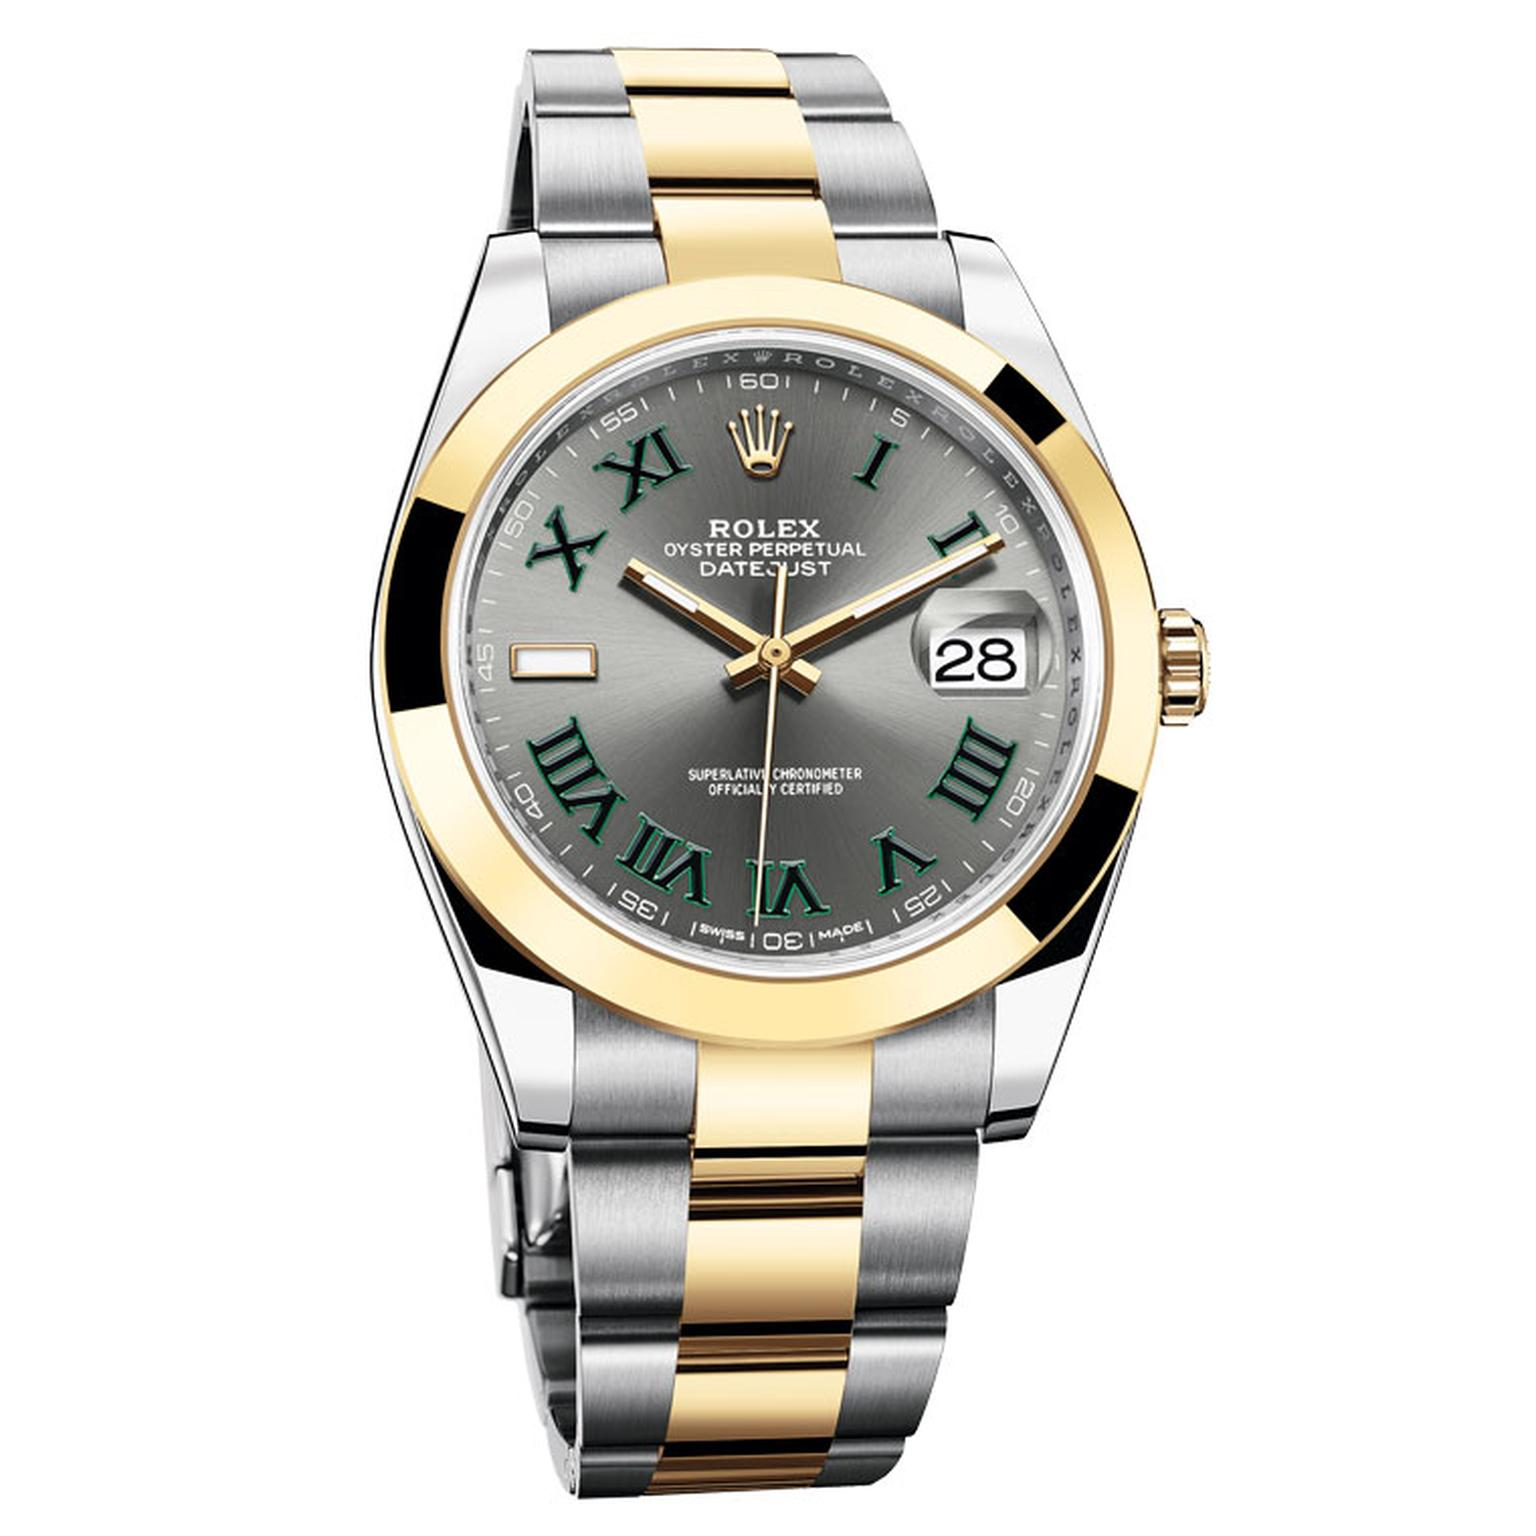 Rolex Datejust 41mm watch